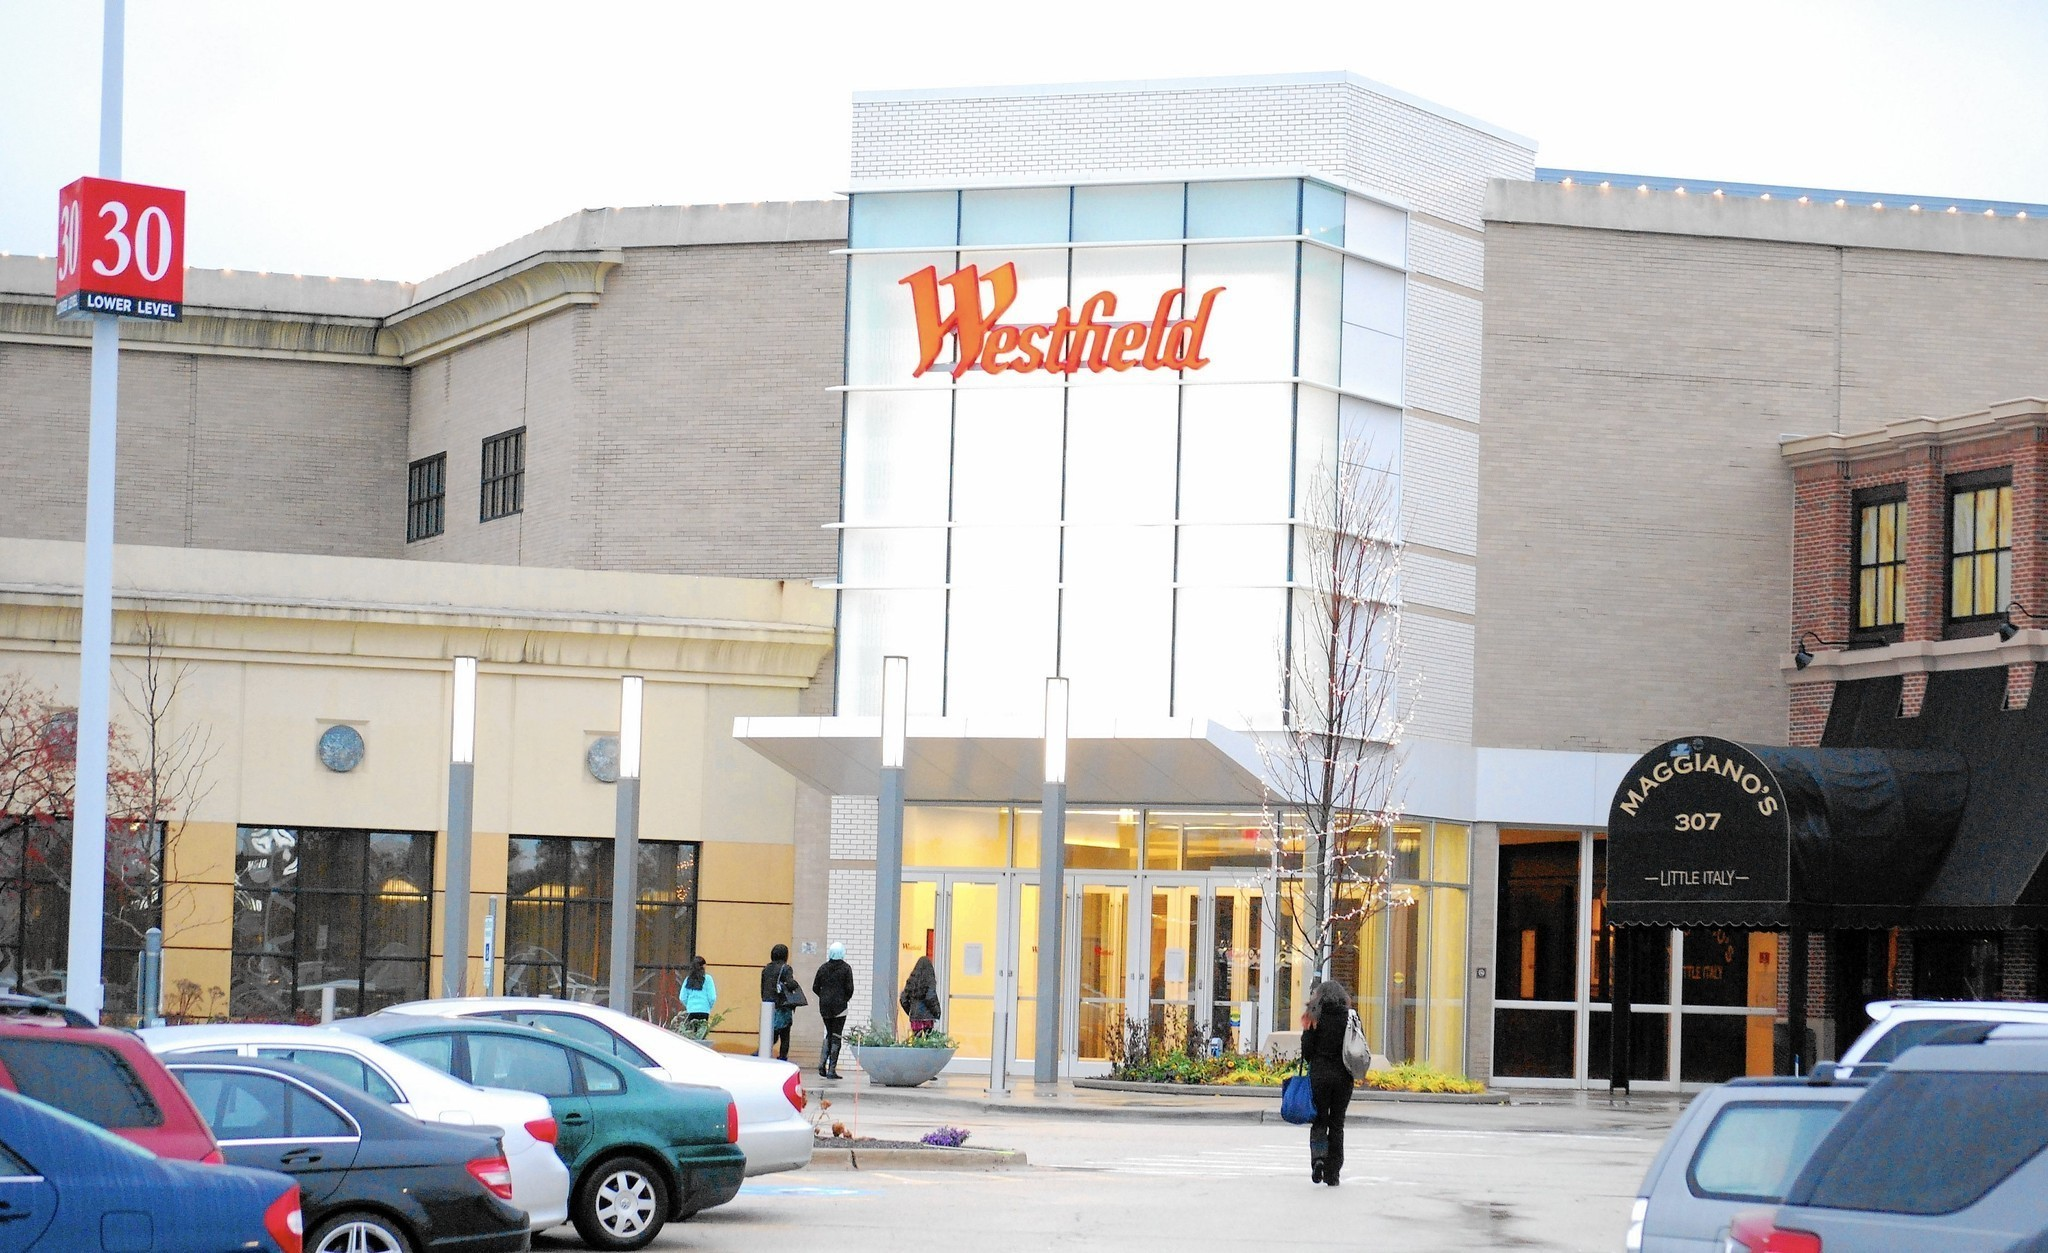 Hawthorn Mall is home to Macy's, JCPenney, Carson Pirie Scott, Sears and over diverse specialty retailers including: AMC, Banana Republic, Barnes & Noble, Gap, LOFT, H&M, Mario Tricoci Day Spa & Salon, Teavana, and Victoria's Secret.